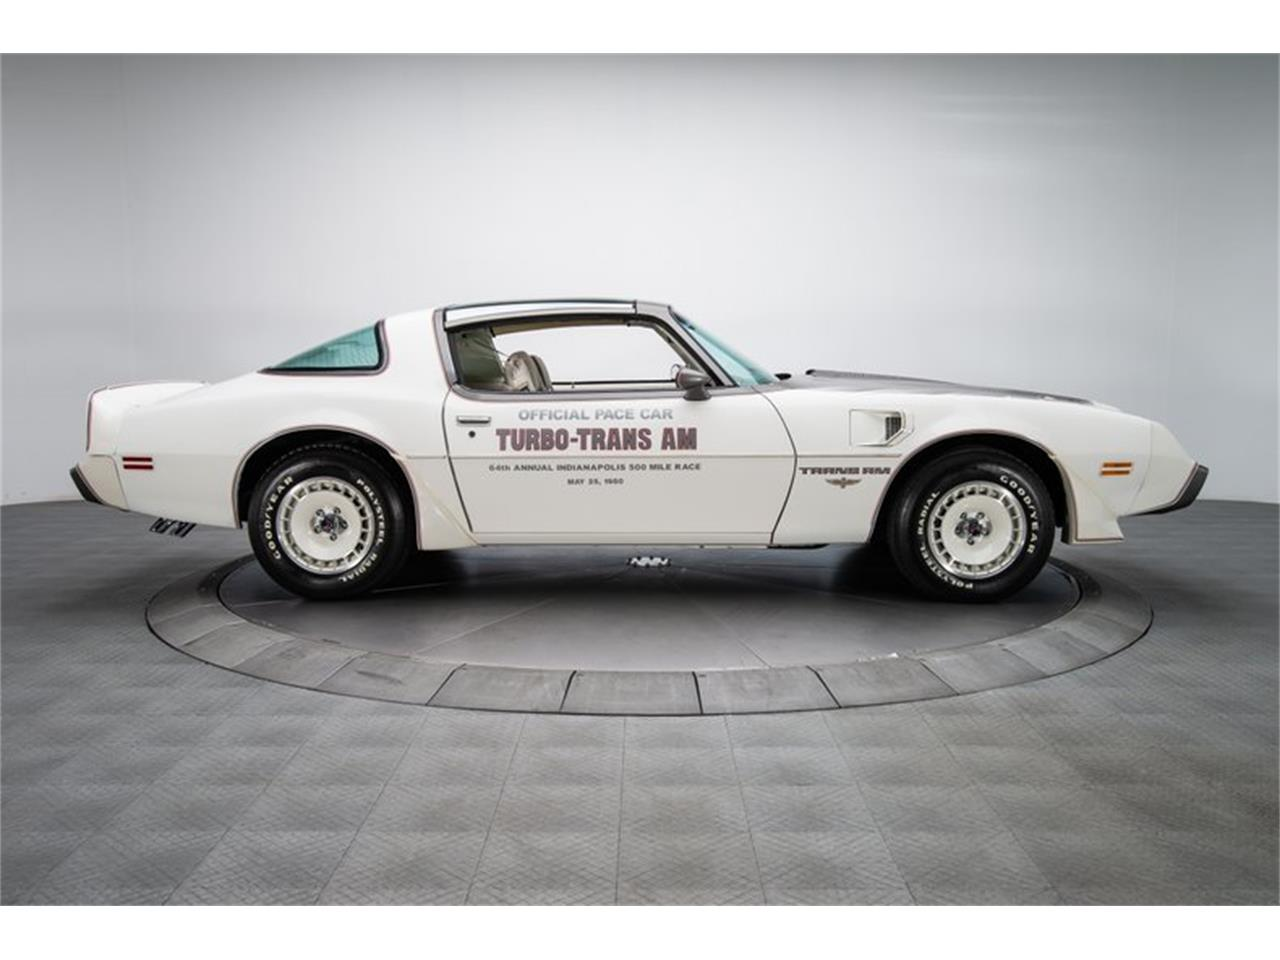 1980 Pontiac Firebird Trans Am Turbo Indy Pace Car Edition for sale in Charlotte, NC – photo 5